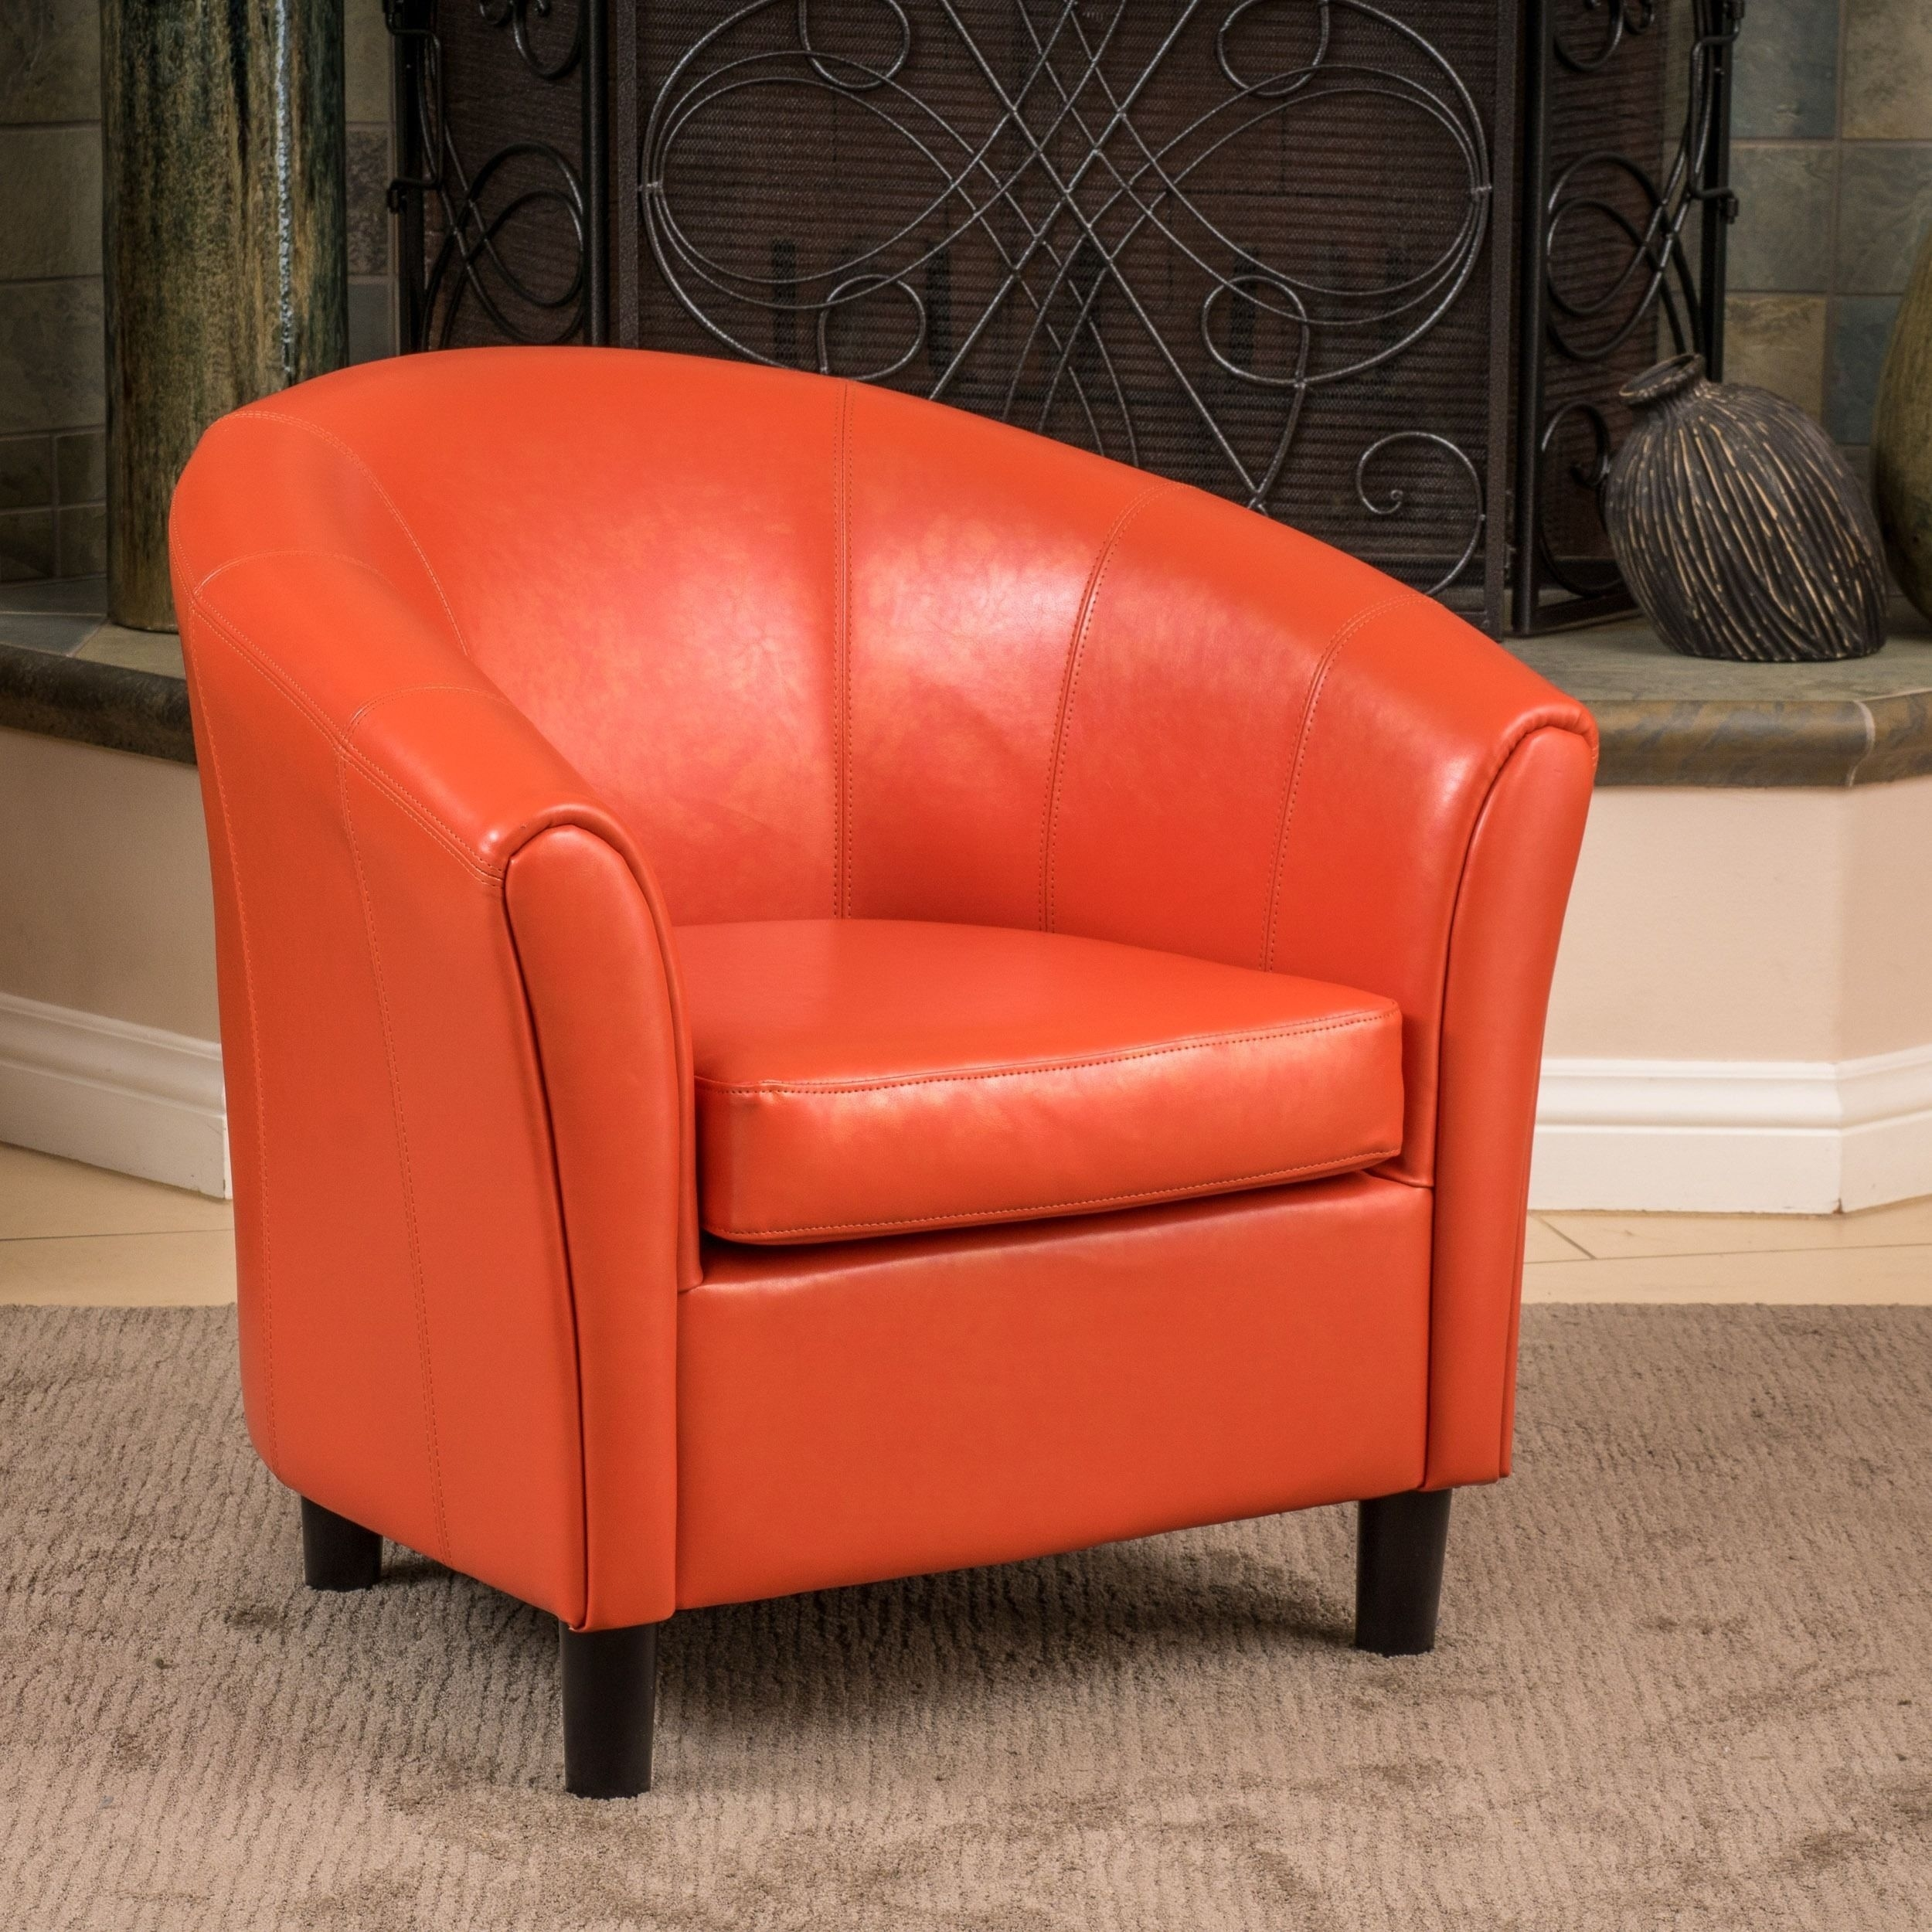 Online Shopping - Bedding, Furniture, Electronics, Jewelry throughout Living Room Club Chairs